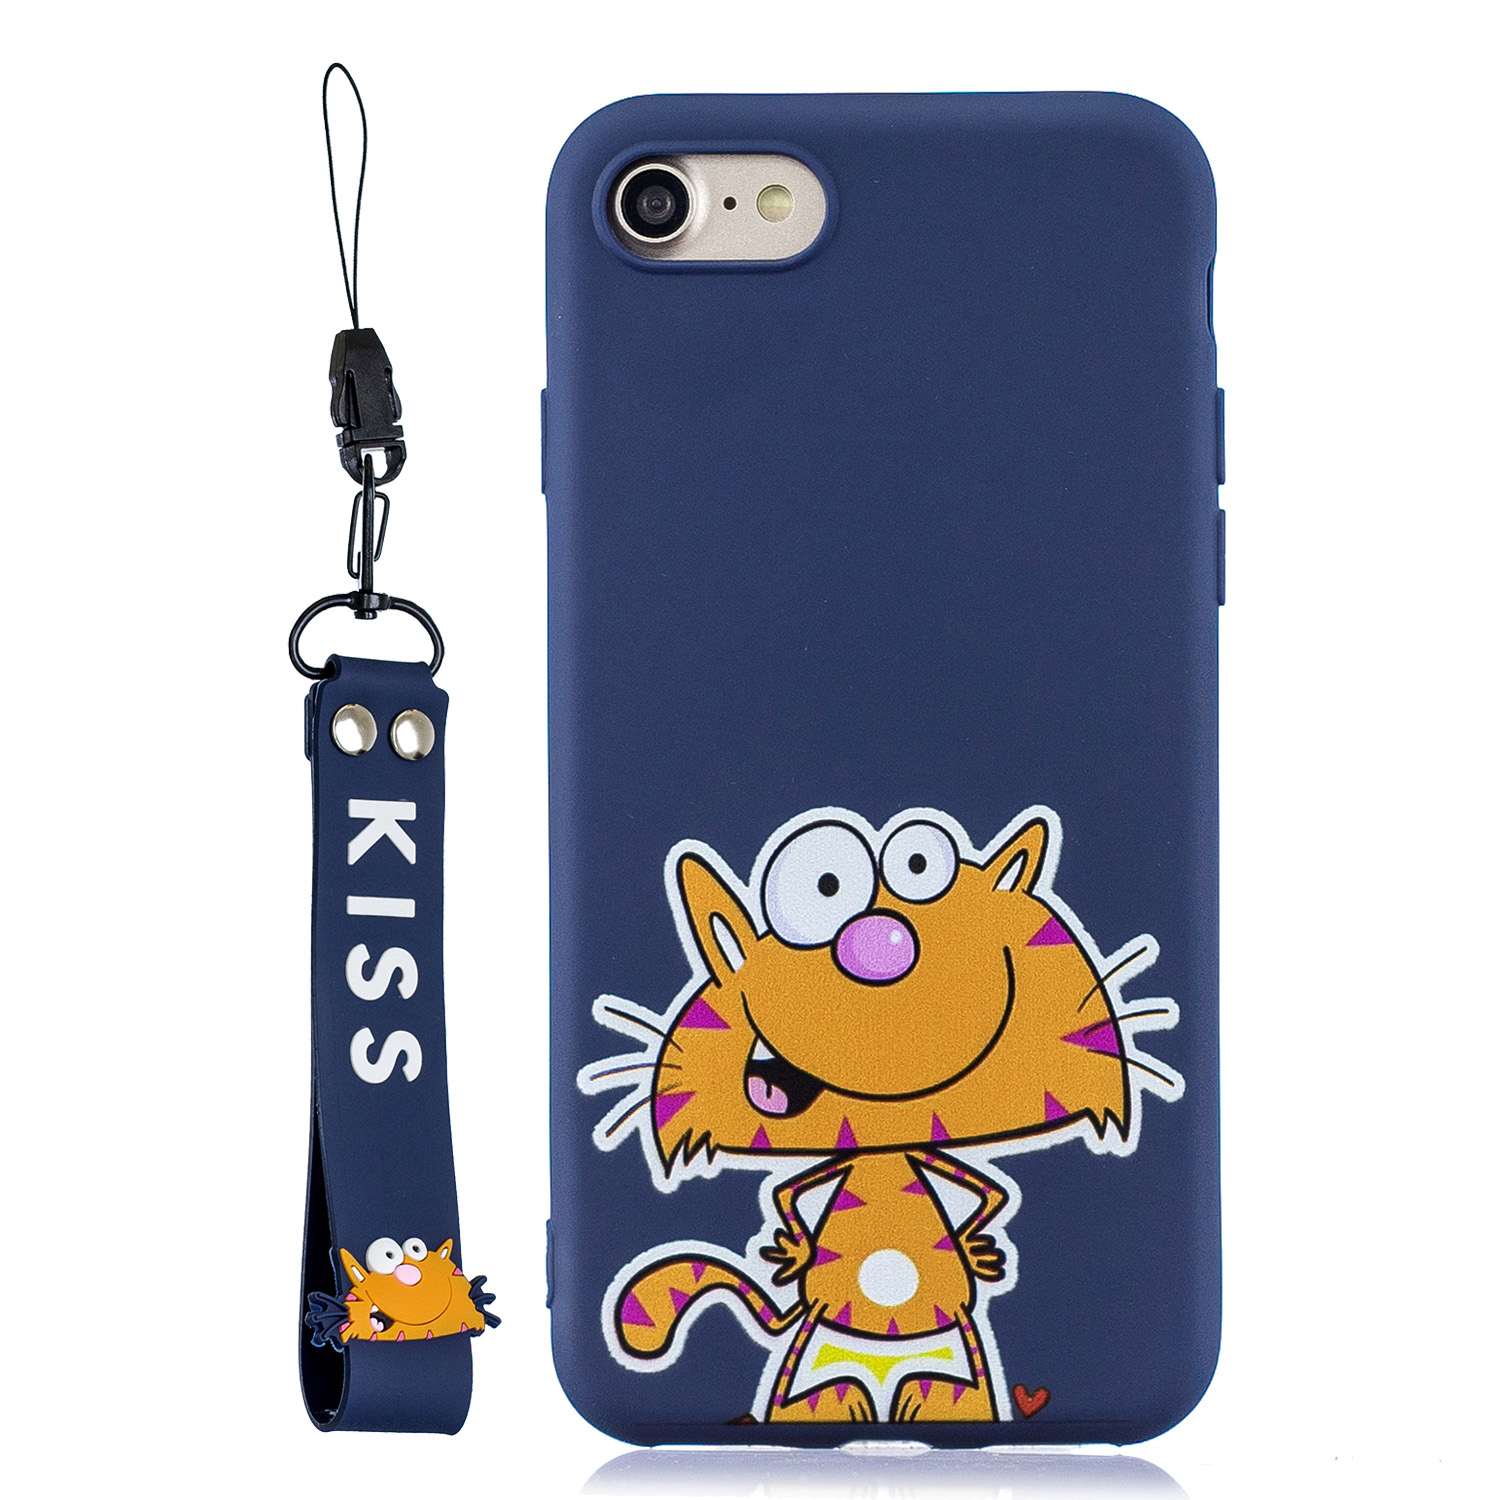 For iPhone 7/8 Cute Coloured Painted TPU Anti-scratch Non-slip Protective Cover Back Case with Lanyard